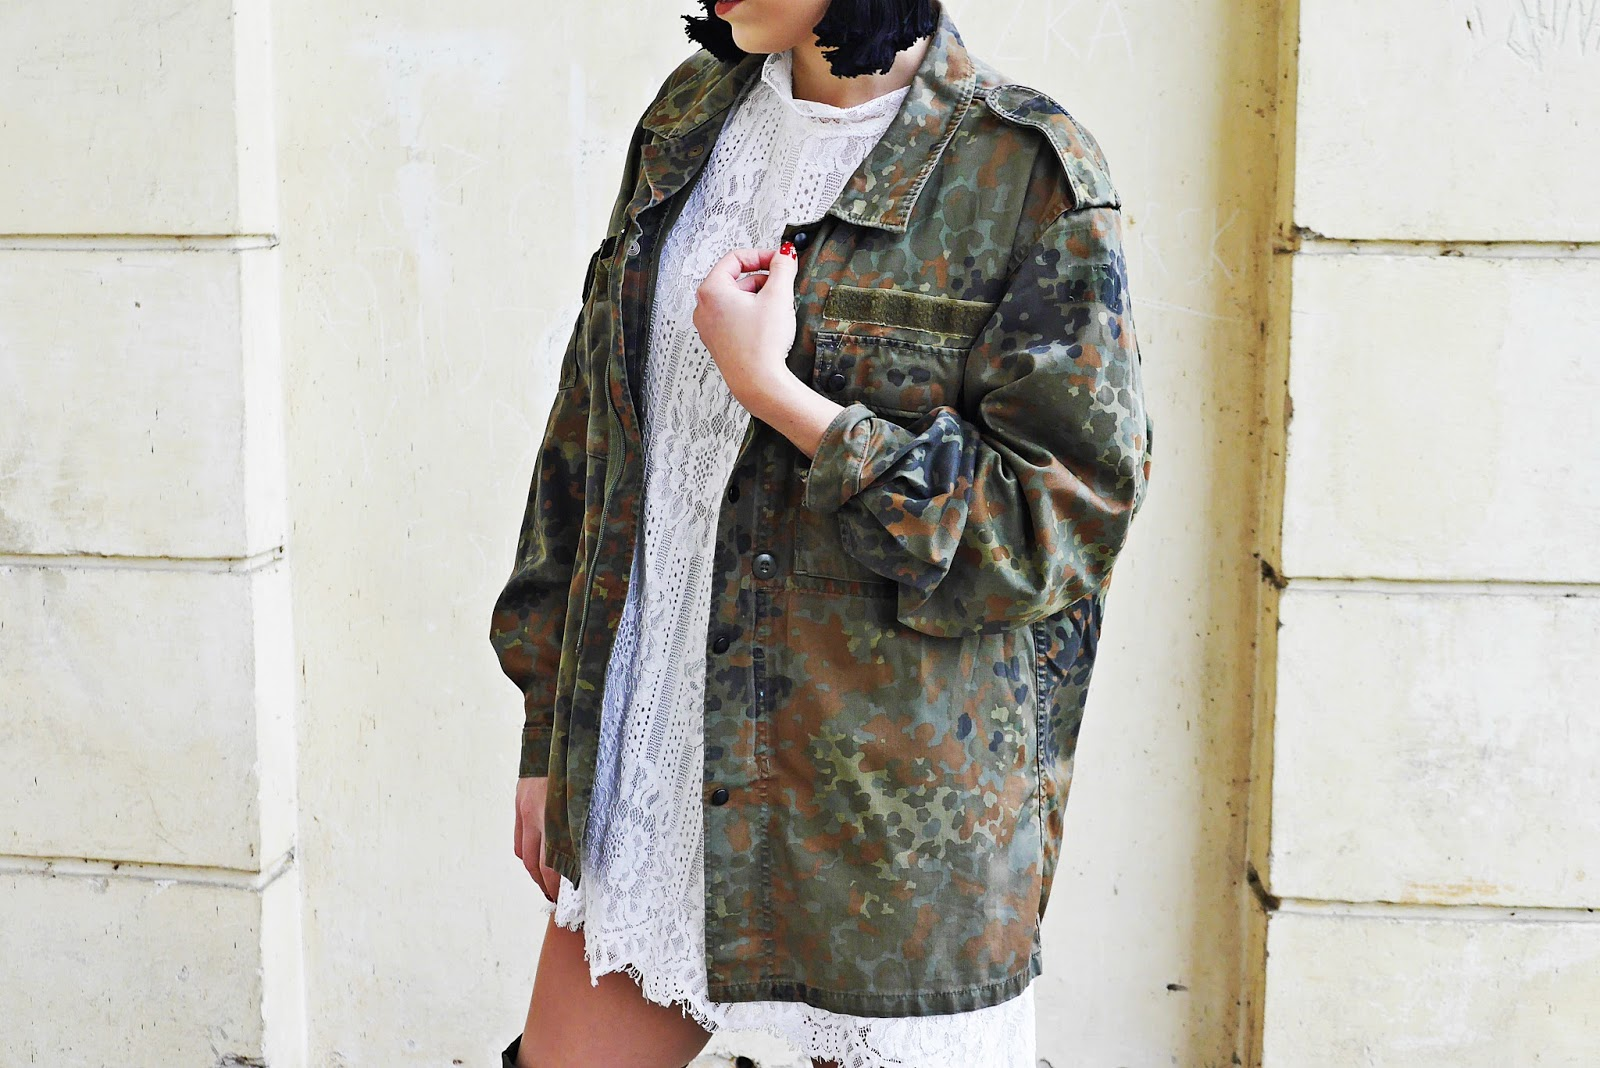 1_moro_jacket_military_white_lace_dress_karyn_blog_modowy_renee_031217gt